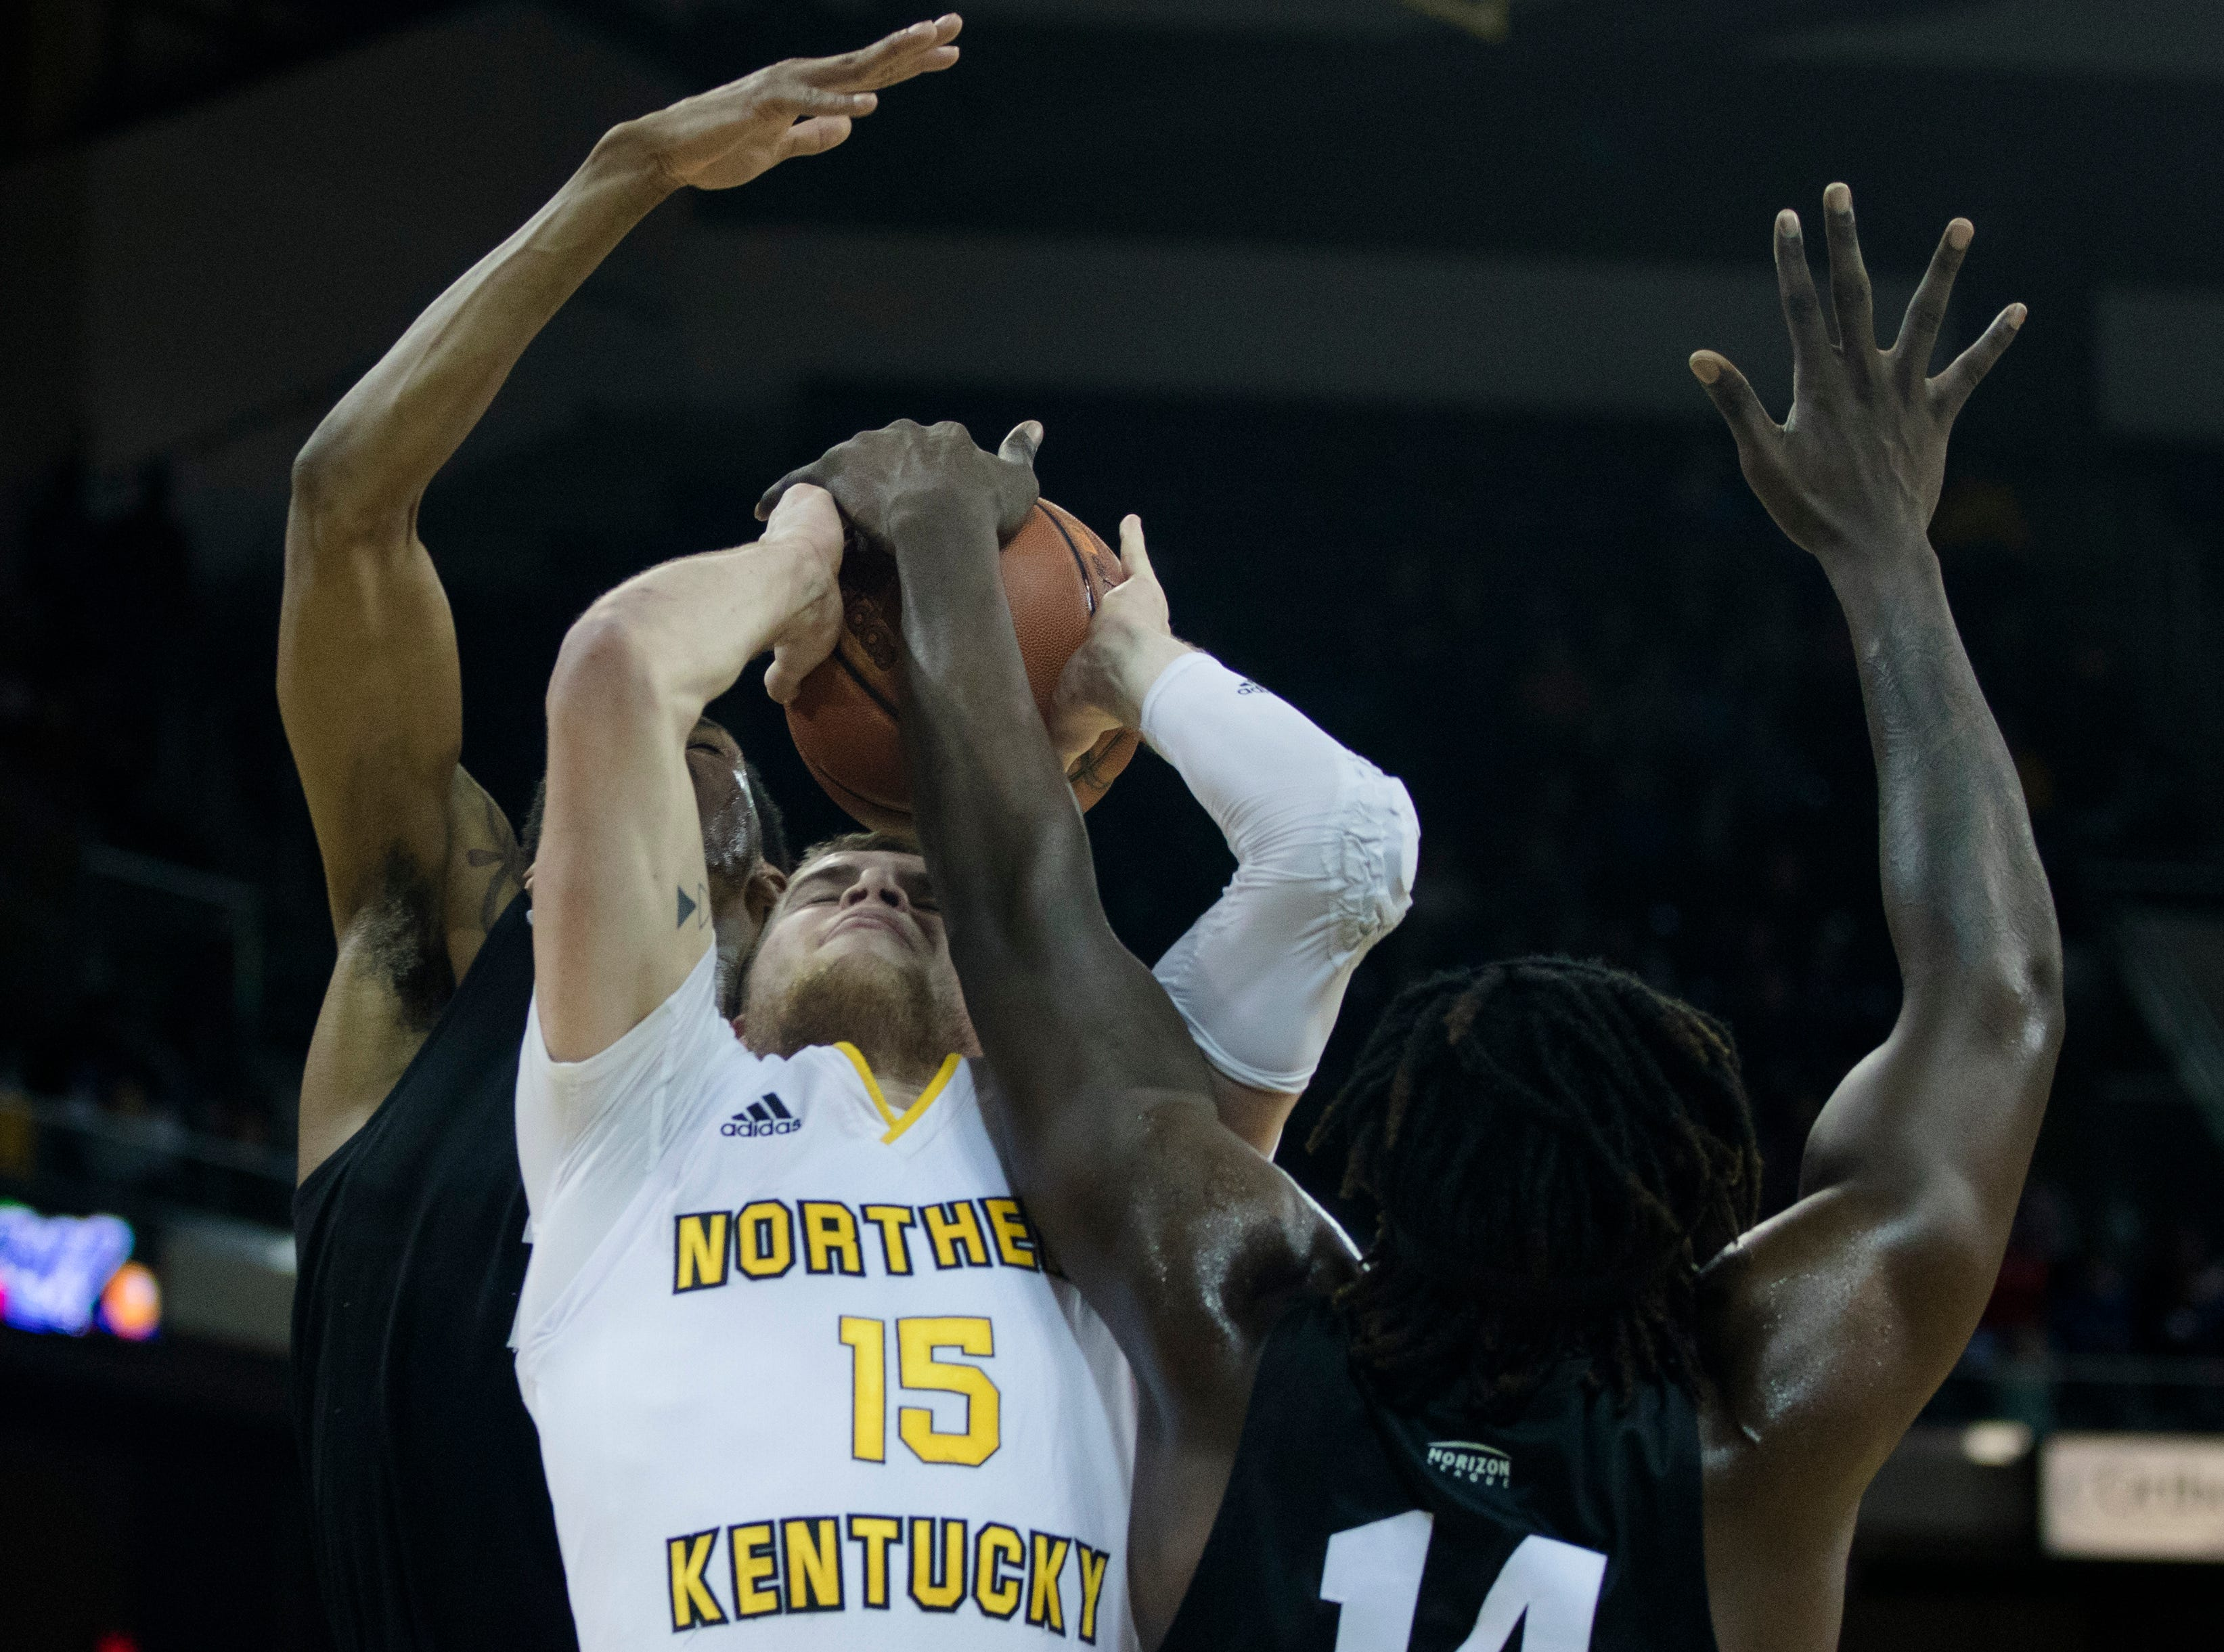 Northern Kentucky Norse guard Tyler Sharpe (15) draws a blocking foul from Oakland Golden Grizzlies forward Xavier Hill-Mais (14) in the first half of the men's NCAA basketball game between Northern Kentucky Norse and Oakland Golden Grizzlies on Saturday, Feb. 9, 2019, at BB&T Arena in Highland Heights, Ky.